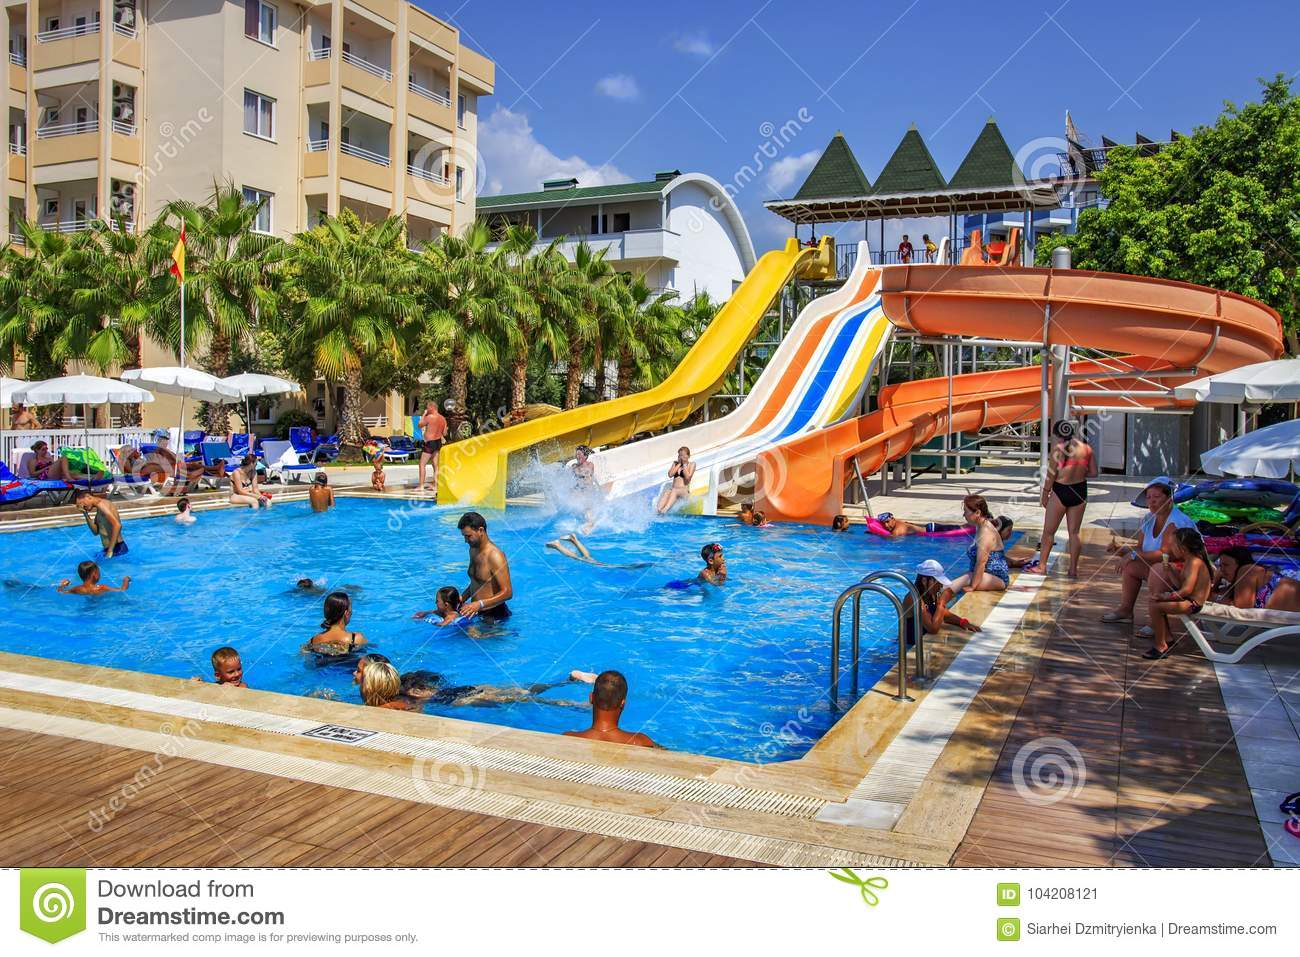 Konakli Turkey August 18 2017 Swimming Pool With Water Park In Territory Of Resort Tropical Hotel Editorial Photo Image Of Summer Swimming 104208121